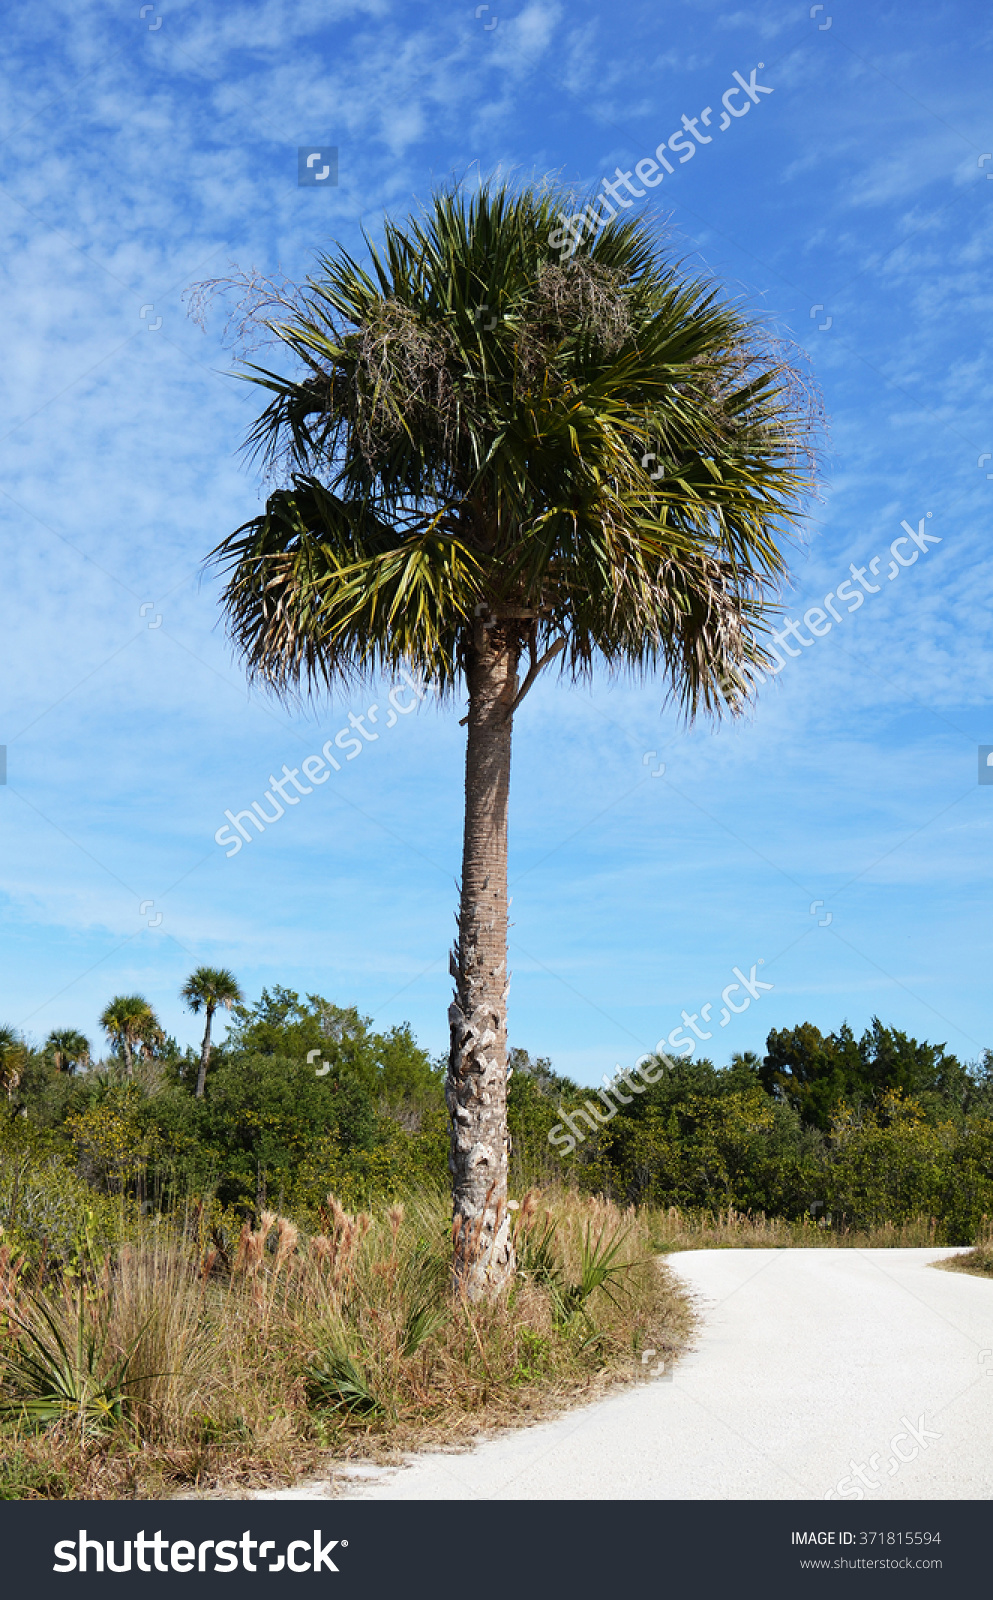 Palm Tree By A Dirt Road At The Wild Life Refuge In Cape Canaveral.